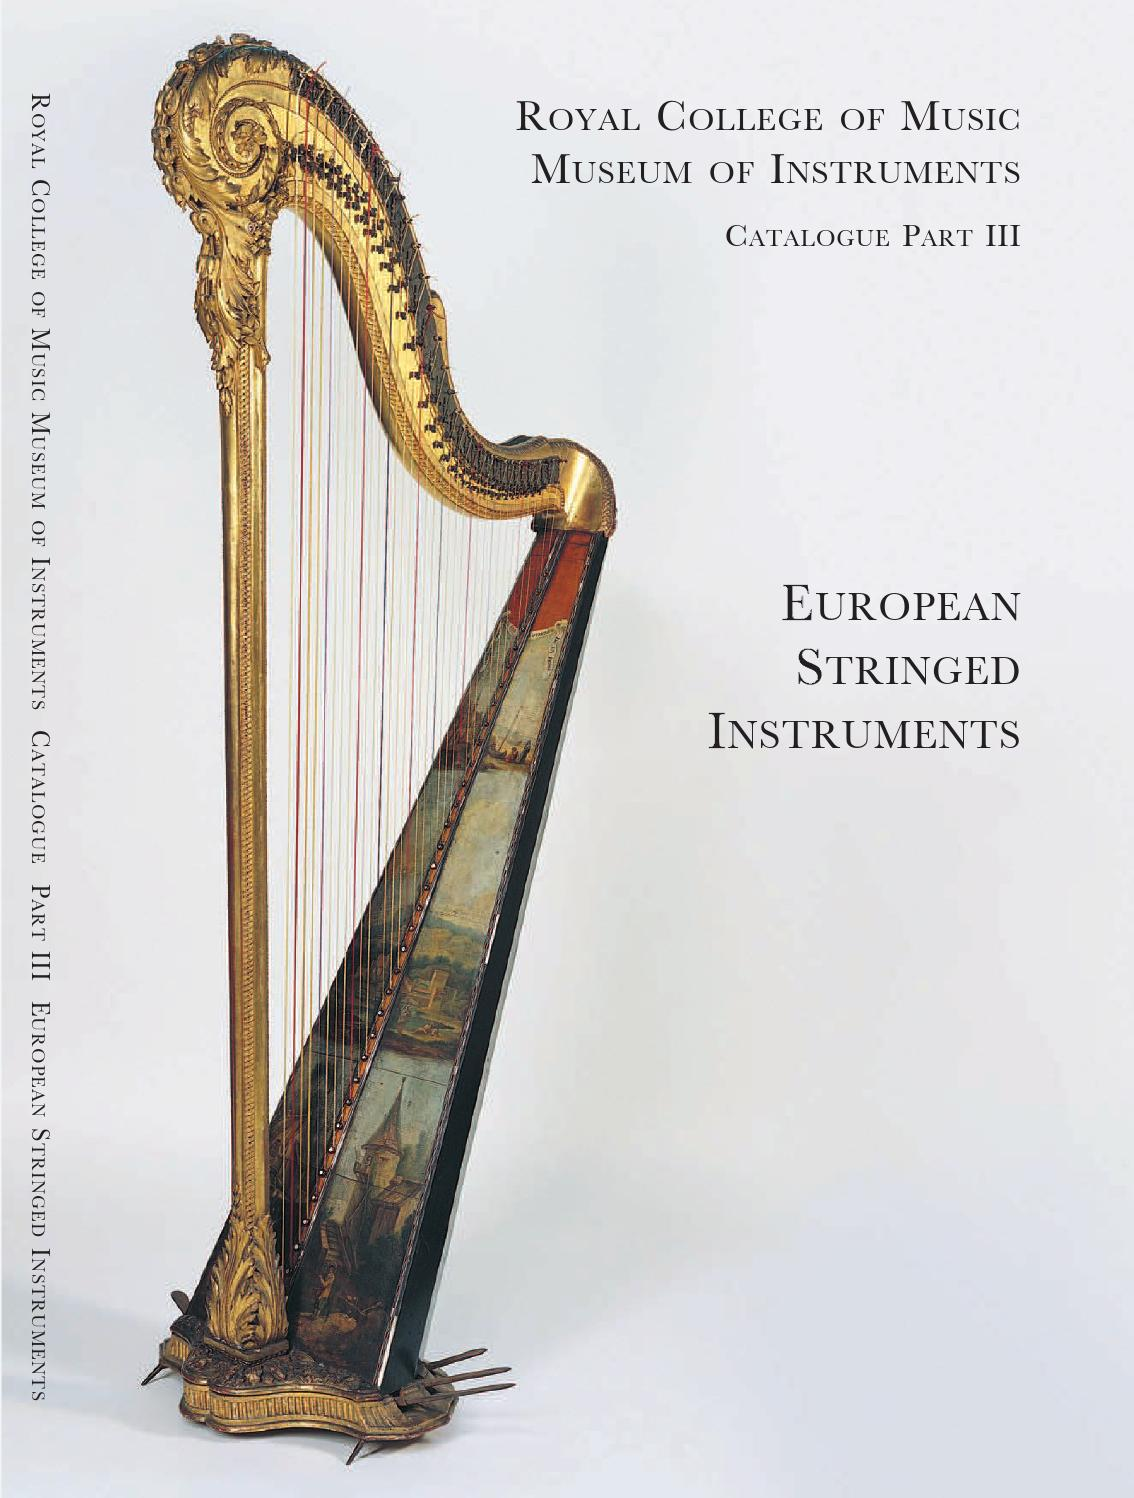 Rcm Museum Of Instruments Catalogue Part Iii European Stringed Nicholas Keith Elizabeth 36mm Nk8106 By Royal College Music Issuu